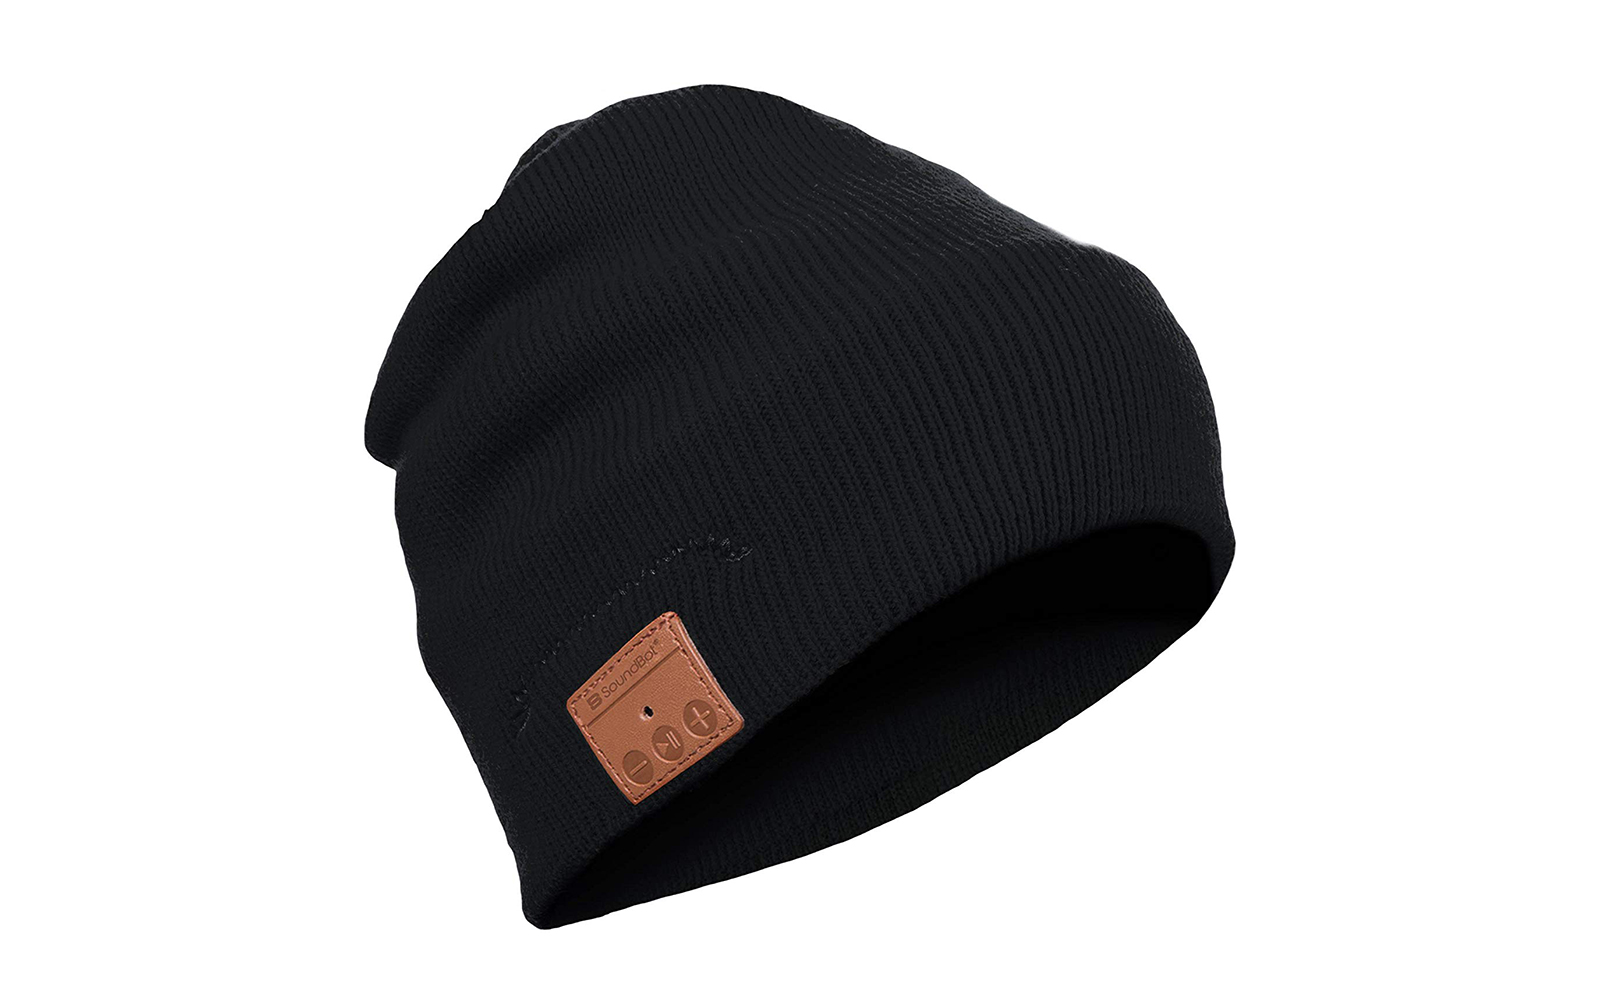 You can listen to music and keep your ears warm with this wireless bluetooth beanie